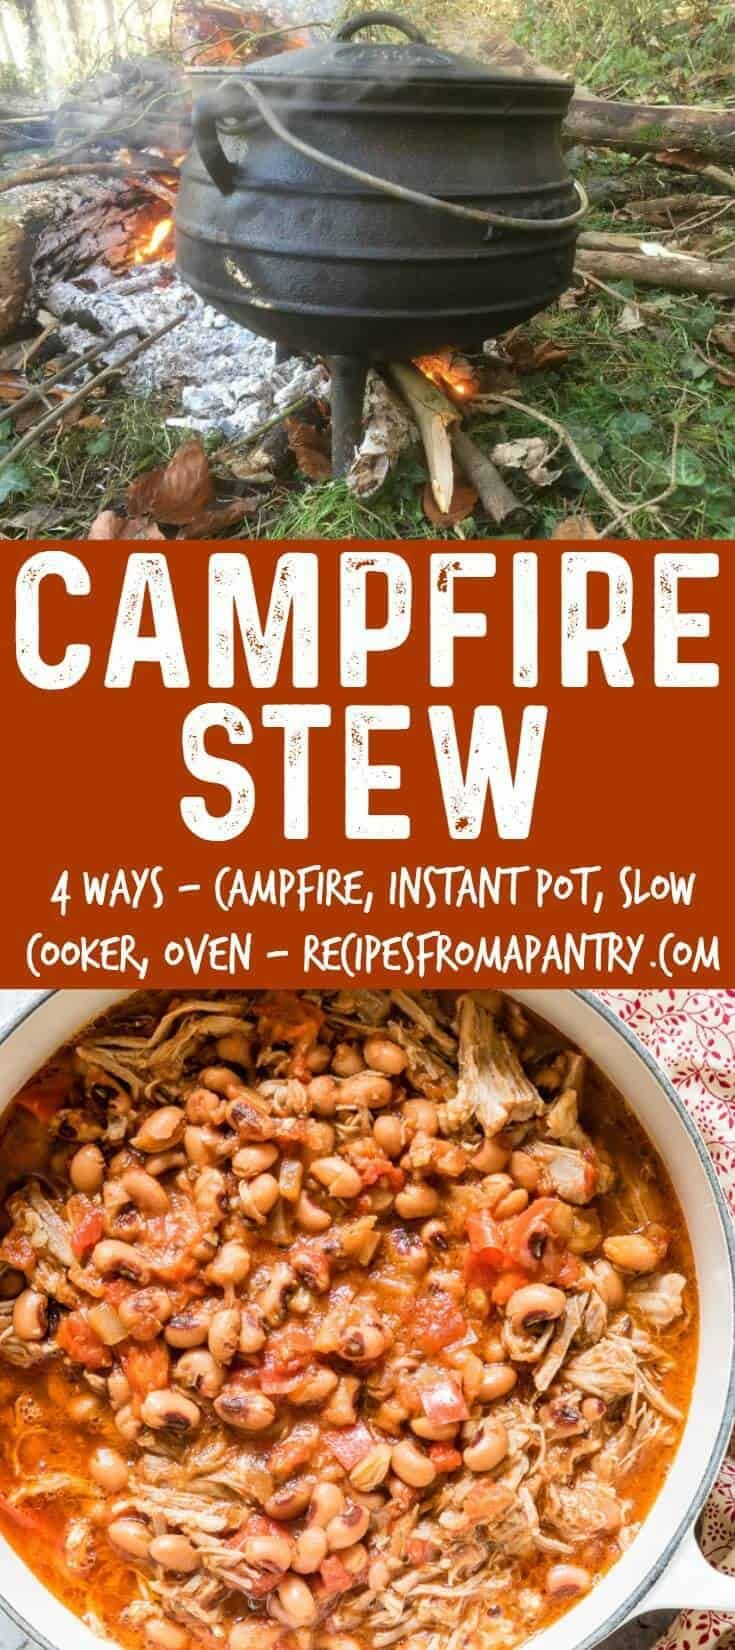 Check out this AMAZING and FLAVOURFUL Campfire Stew recipe! You'll learn how to make Instant Pot Campfire Stew, Slow Cooker Campfire Stew, Oven Campfire Stew, and of course Campfire Stew on the campfire. A hearty and easy stew recipe from Recipes from a Pantry. #campfirestew #camping #camprecipes #stew via @recipespantry